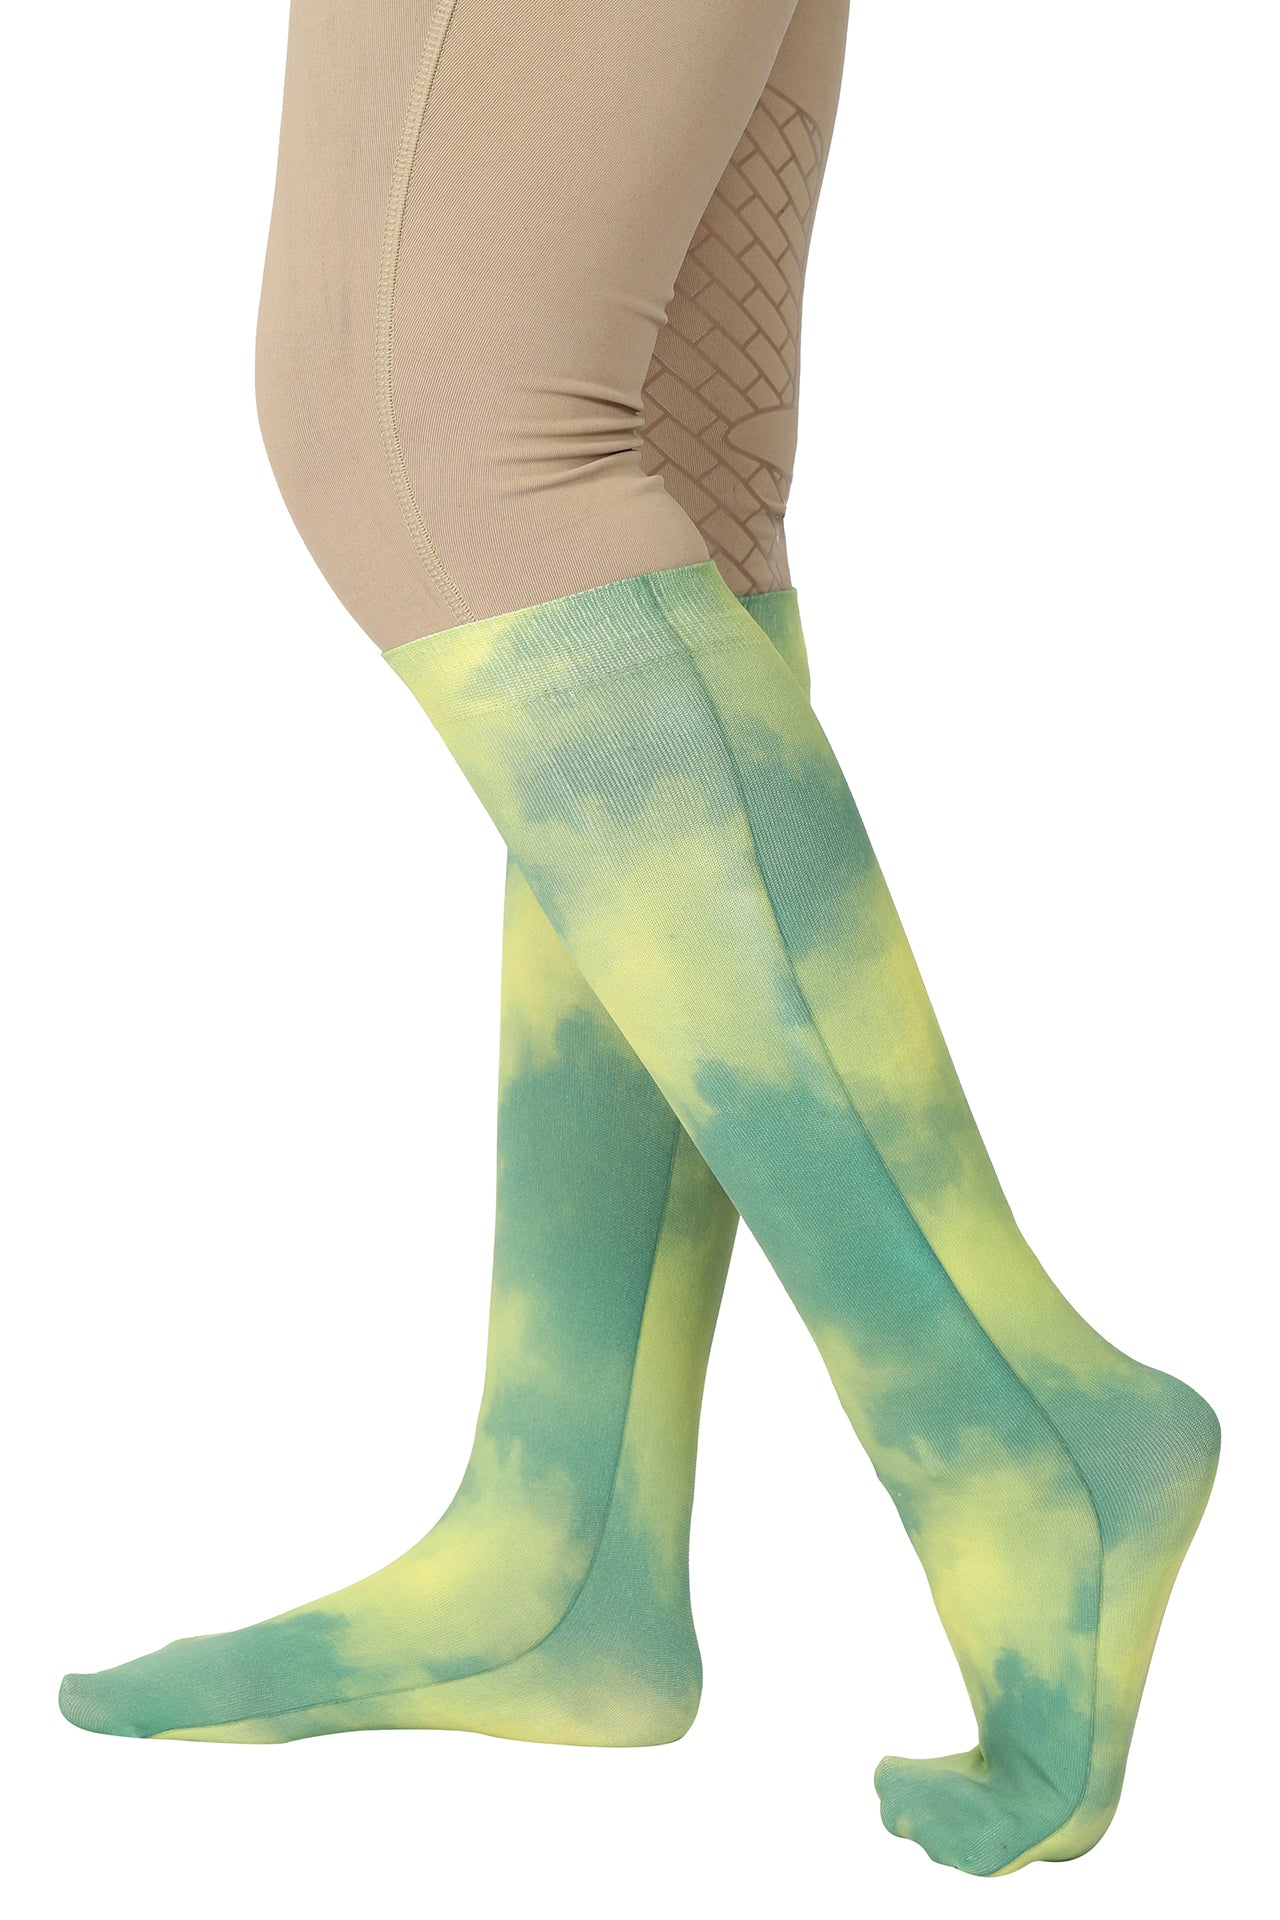 TUFFRIDER COTTON FEEL TIE DYE BOOT SOCKS	_5418